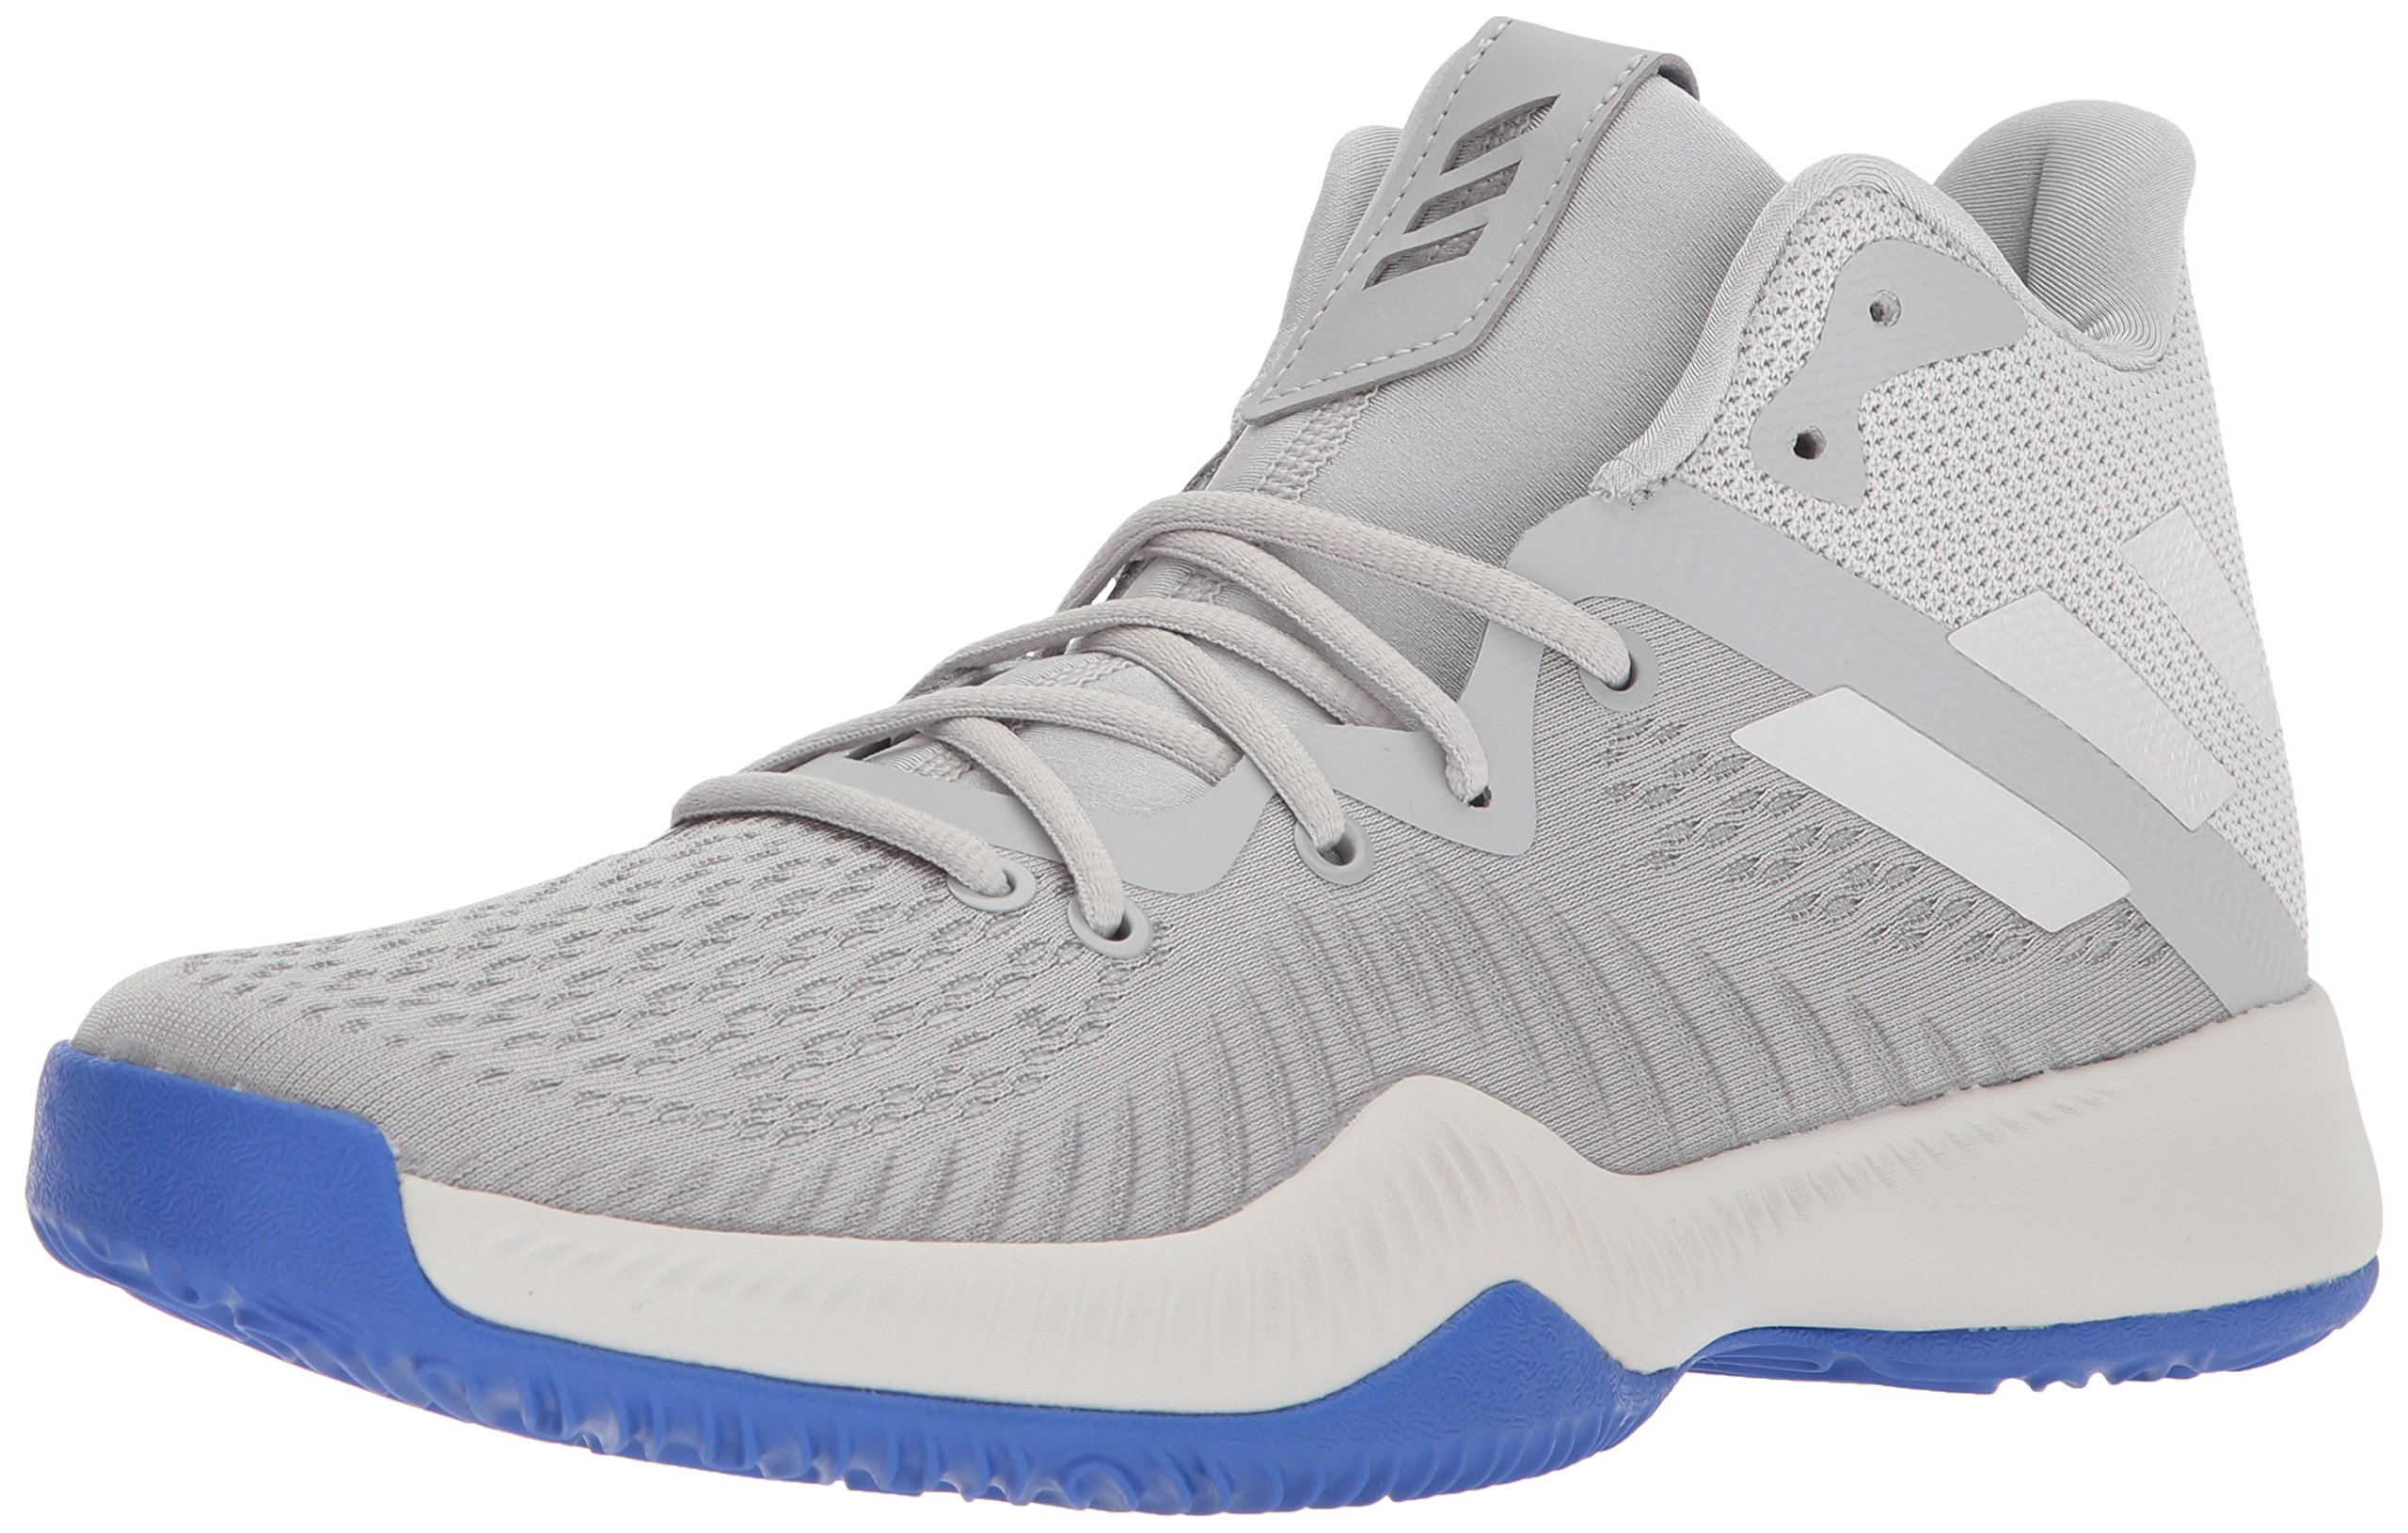 Galleon - Adidas Men s Mad Bounce Basketball Shoe f83b29d60